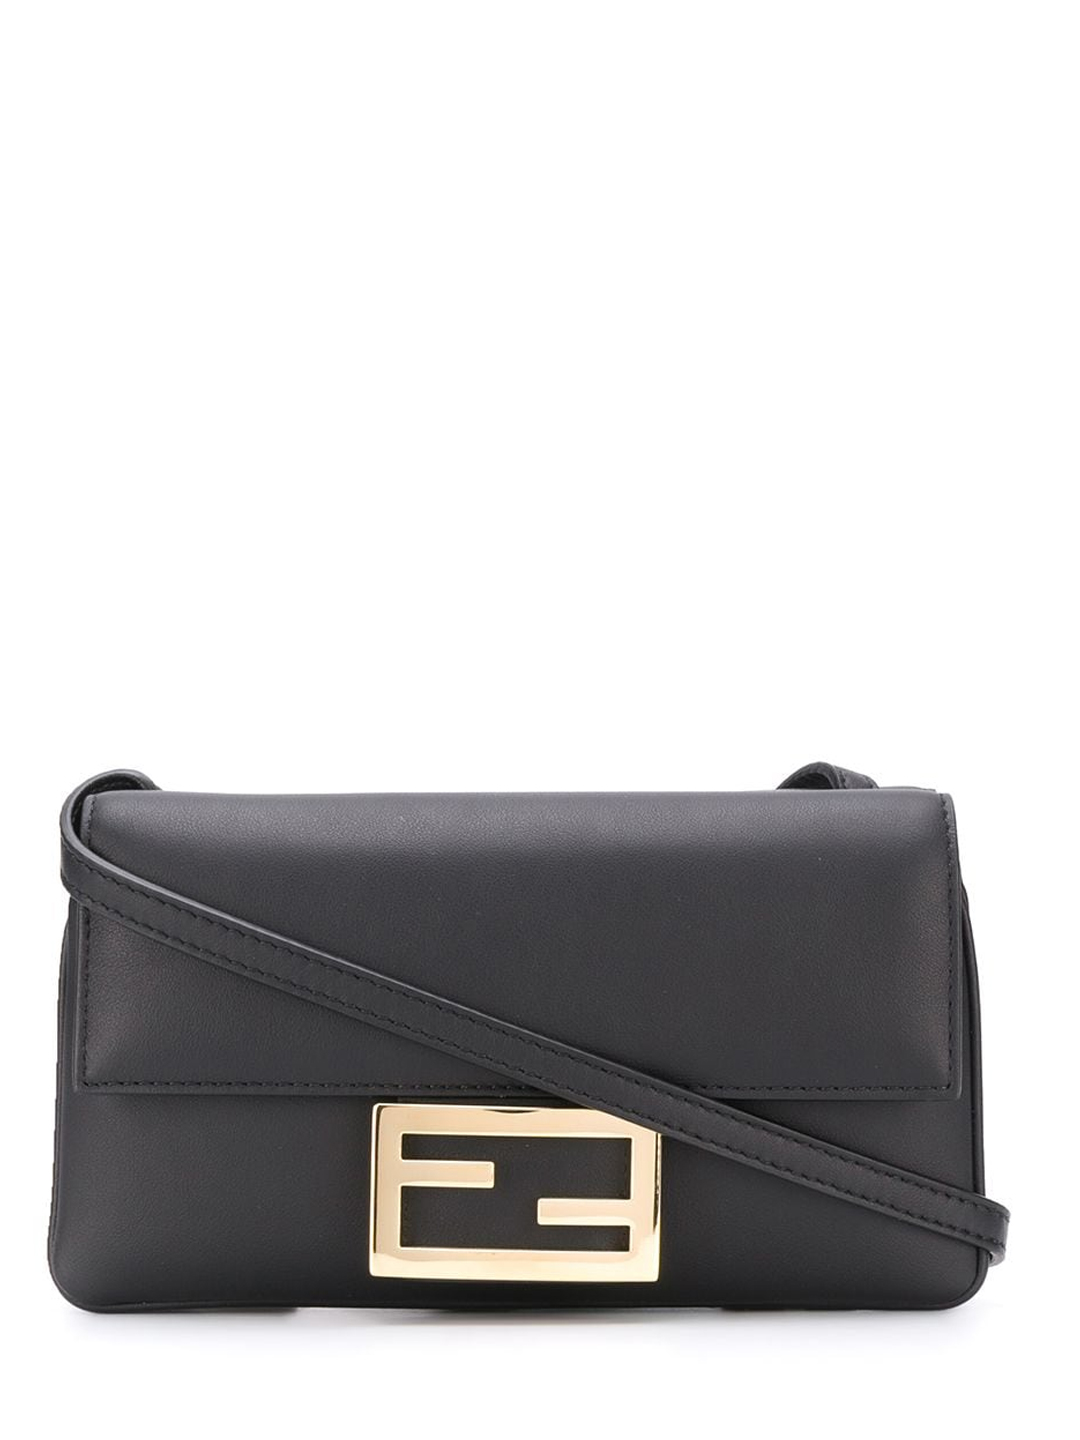 Fendi DUO BAGUETTE BAG BLACK